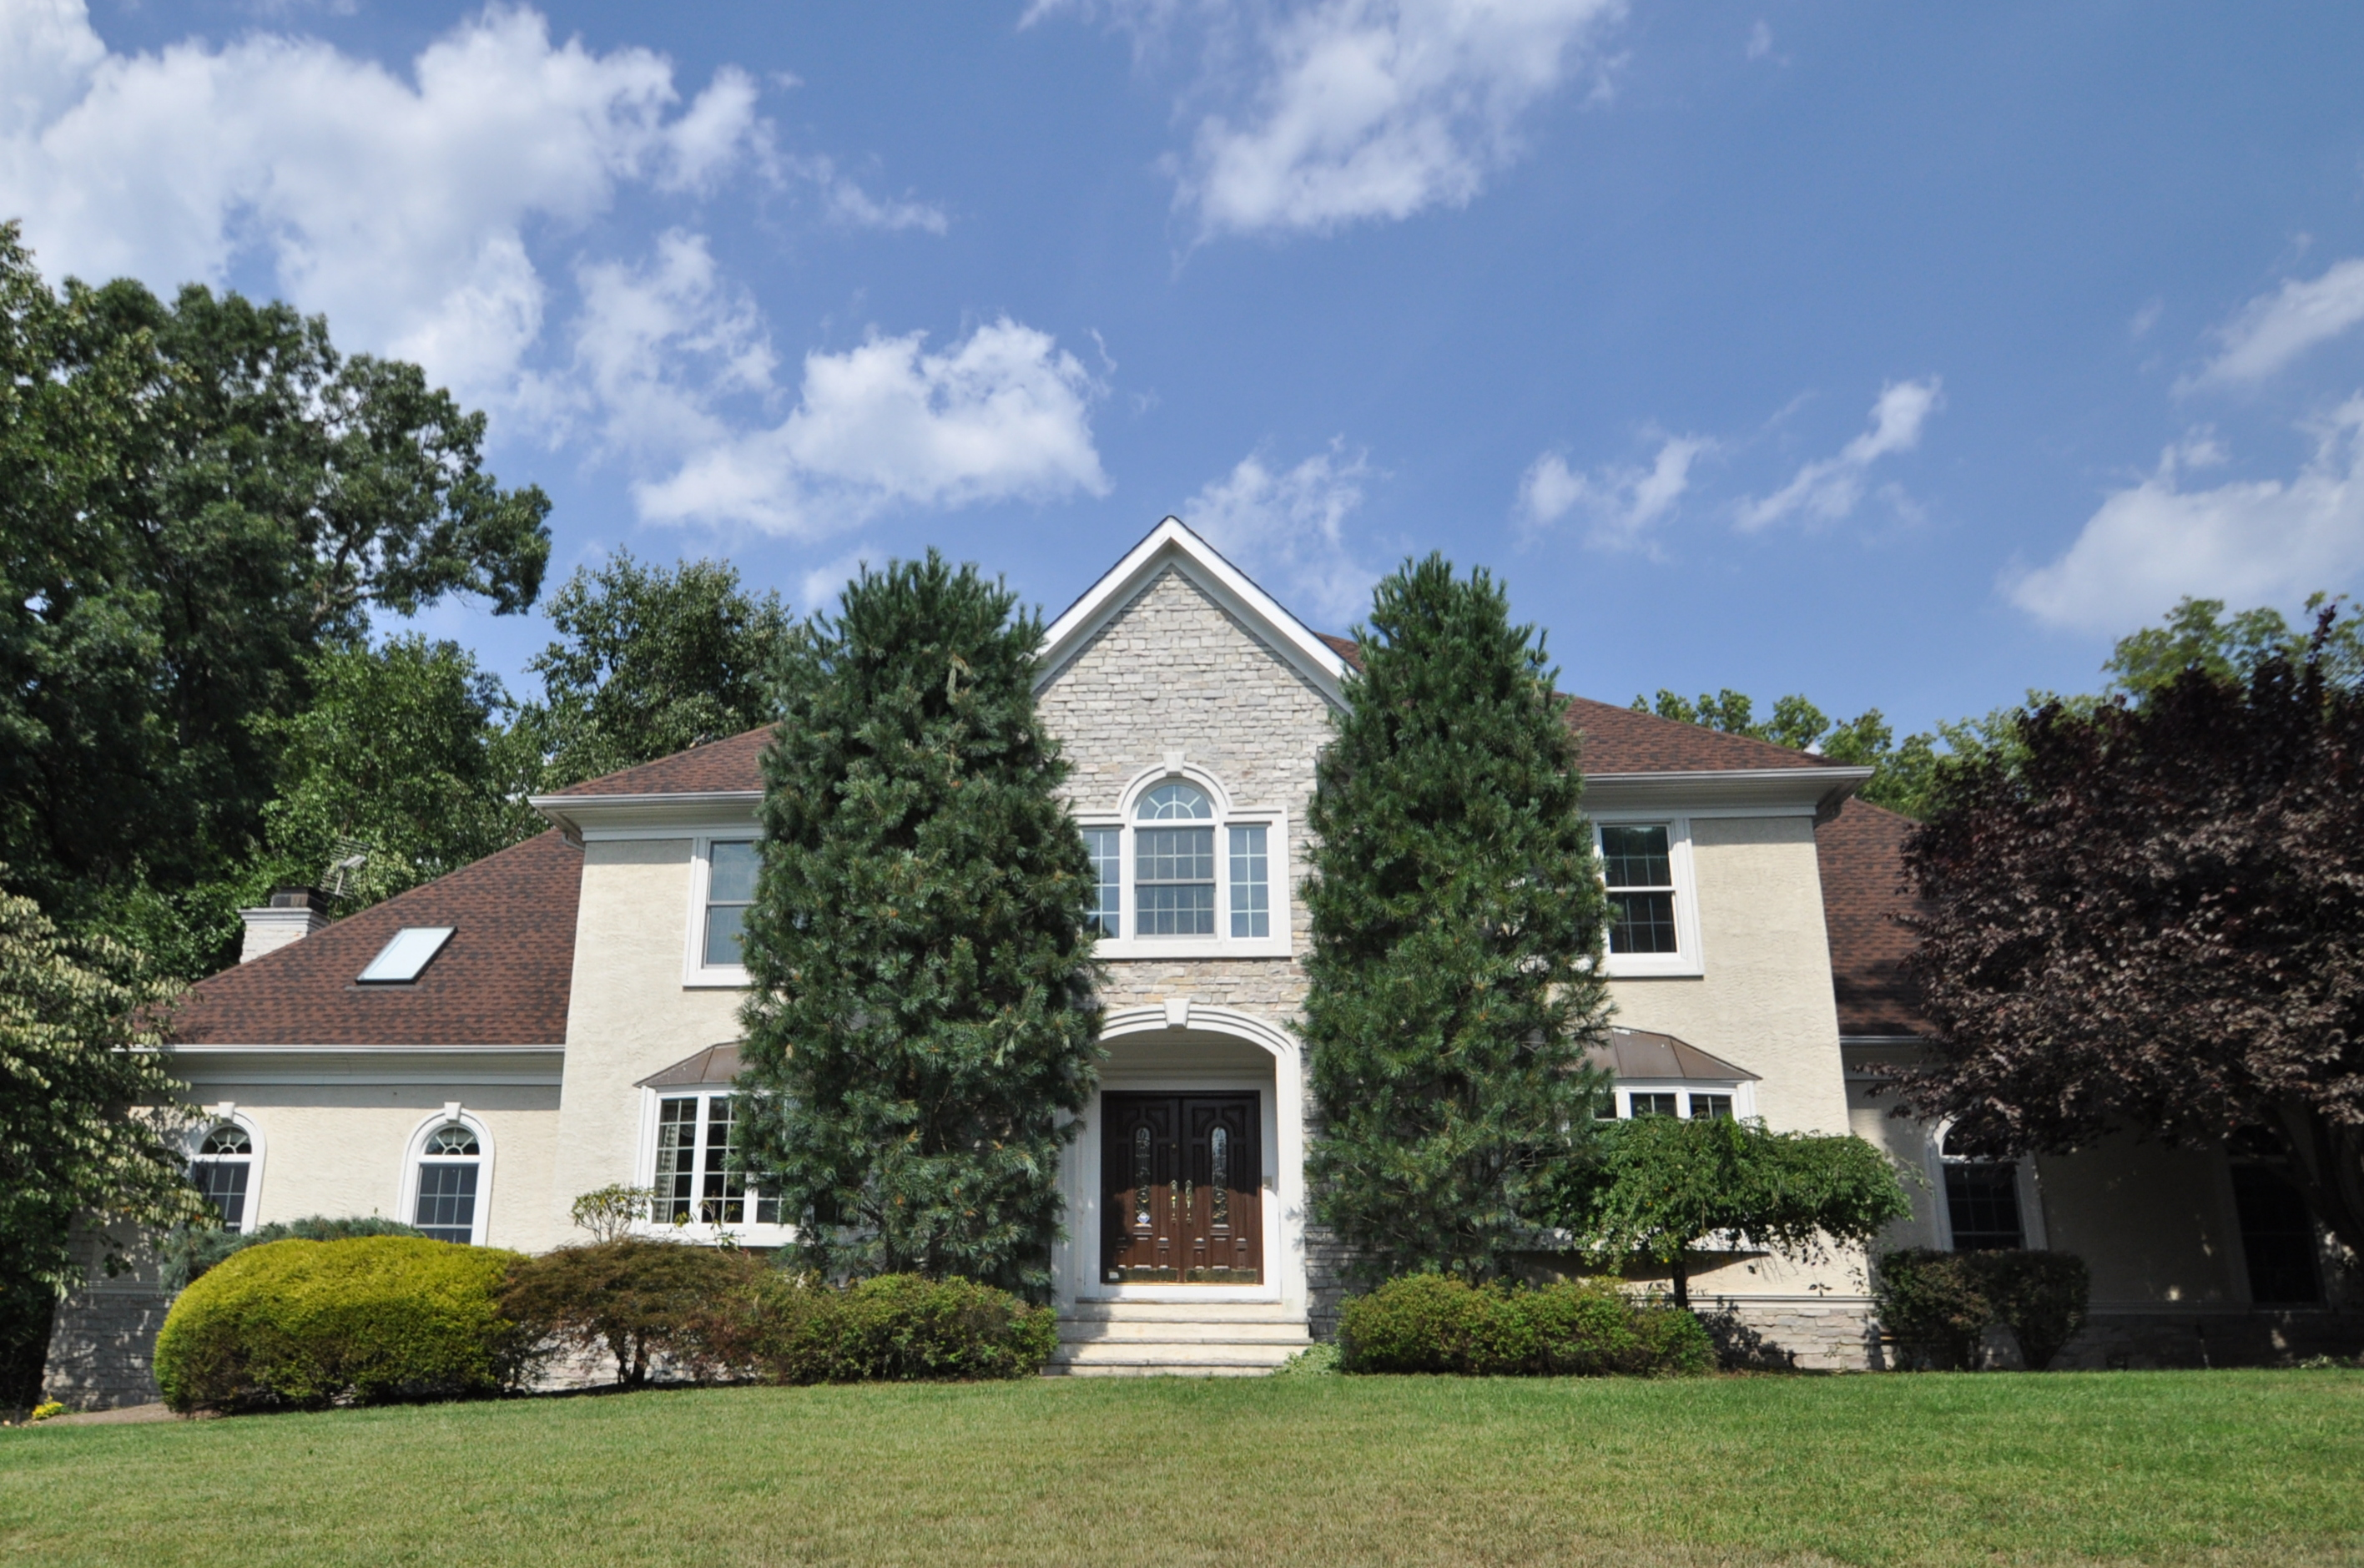 22 Corrigan Way, Old Tappan, New Jersey 07675